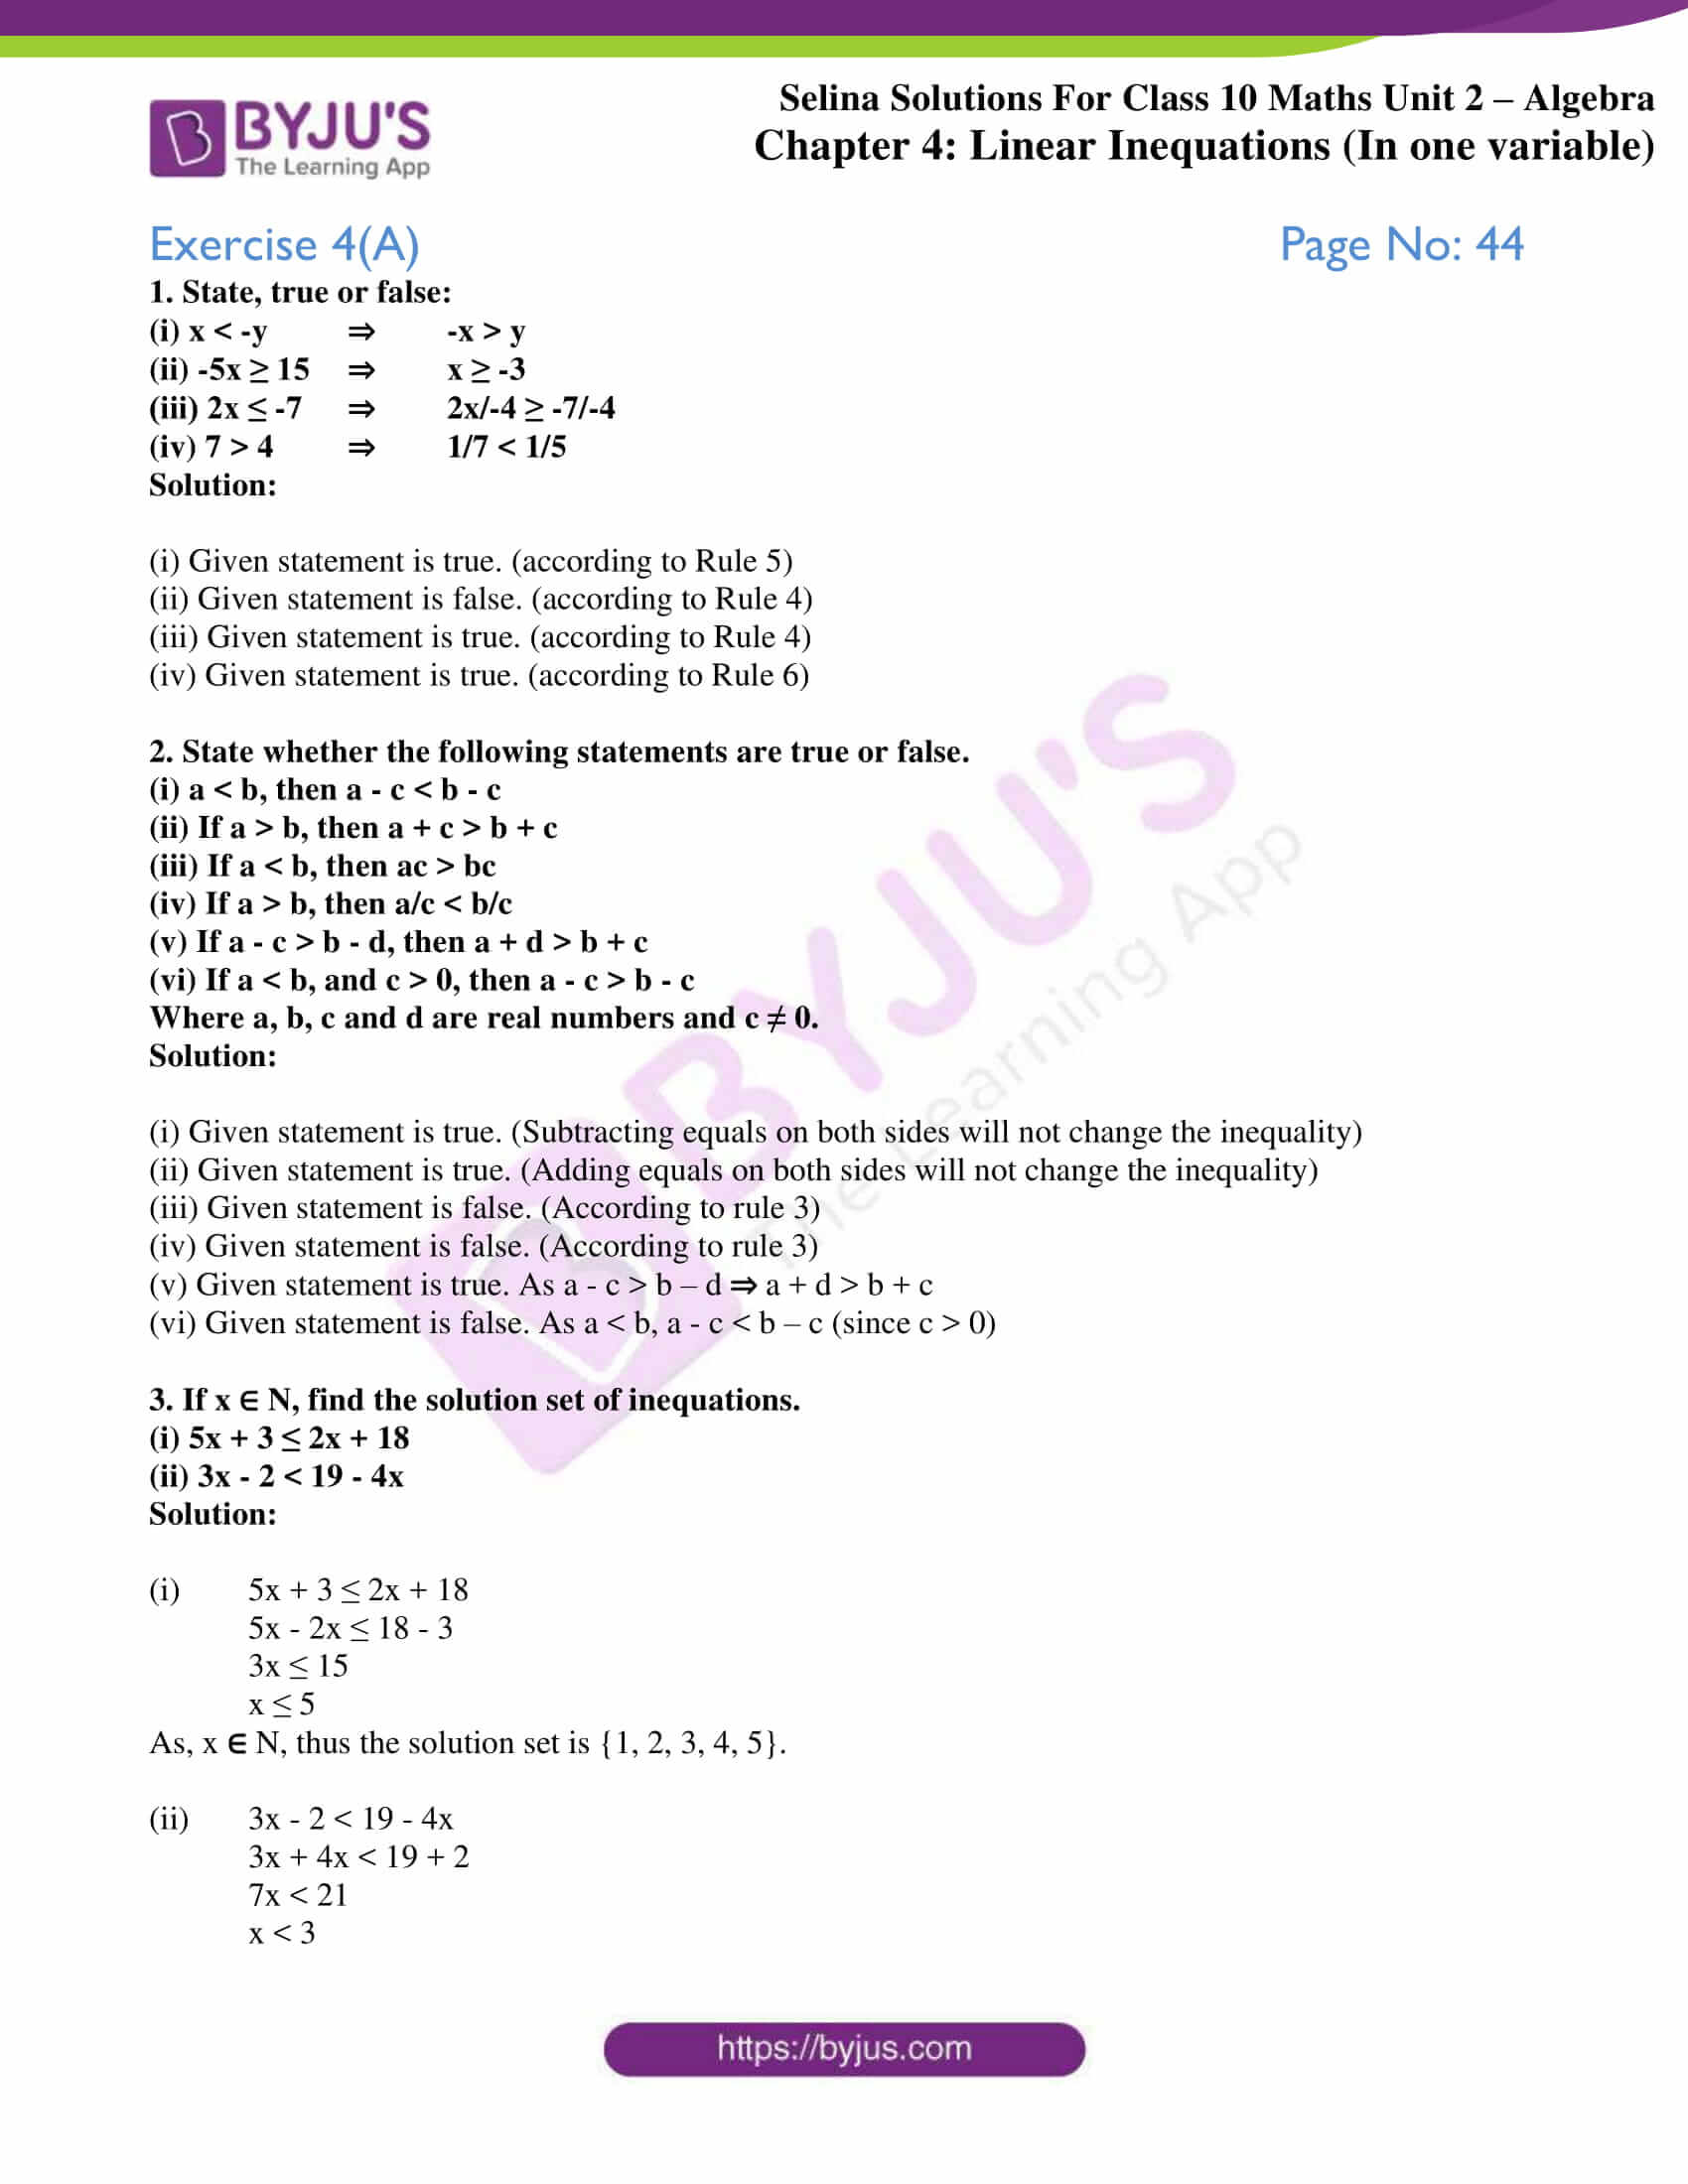 selina solution concise maths class 10 chapter 4a